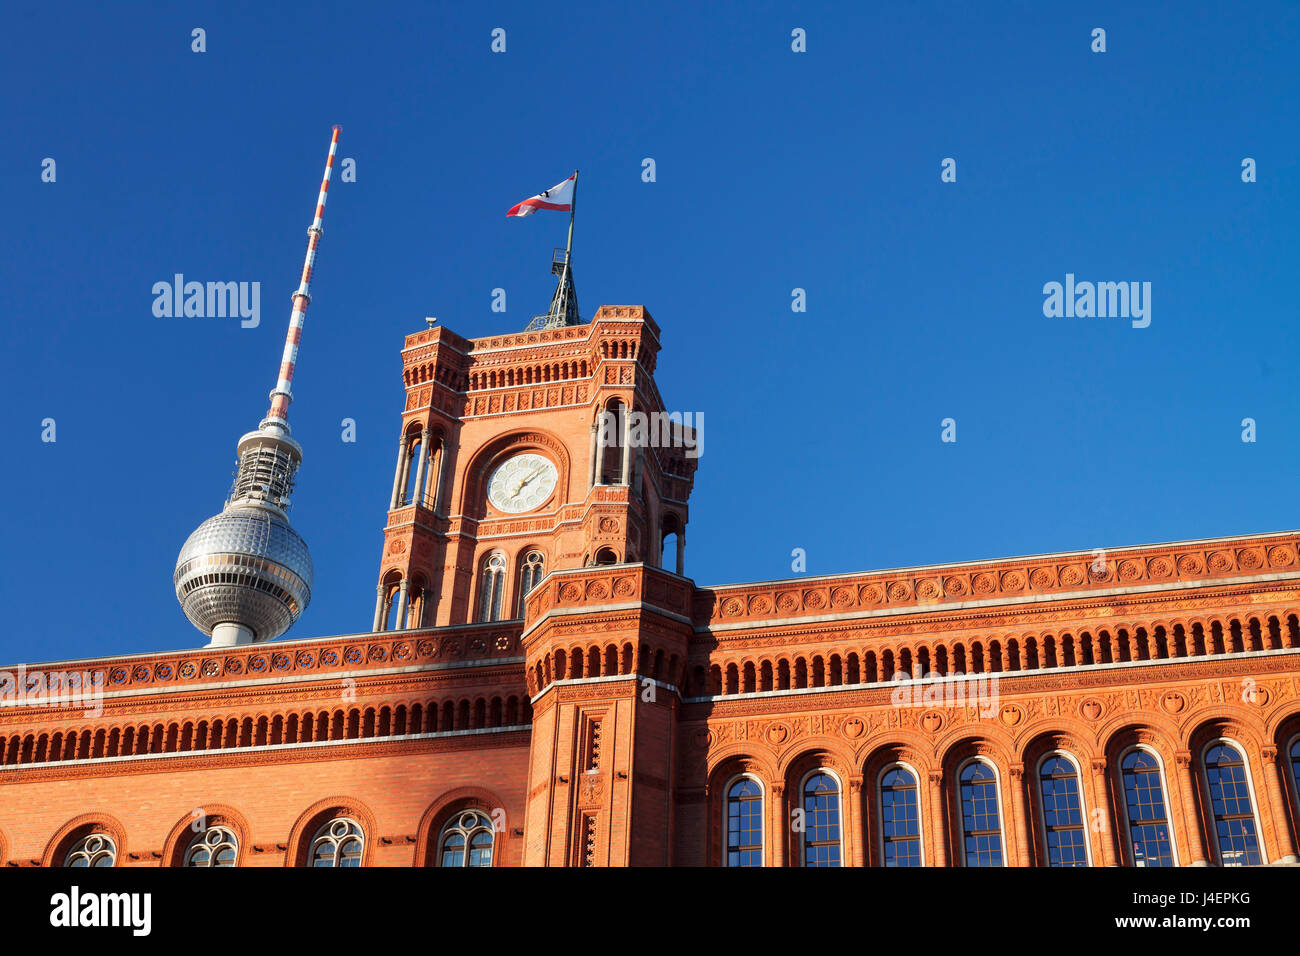 Rotes Rathaus (Red Town Hall), Berliner Fernsehturm TV Tower, Berlin Mitte, Berlin, Germany, Europe - Stock Image